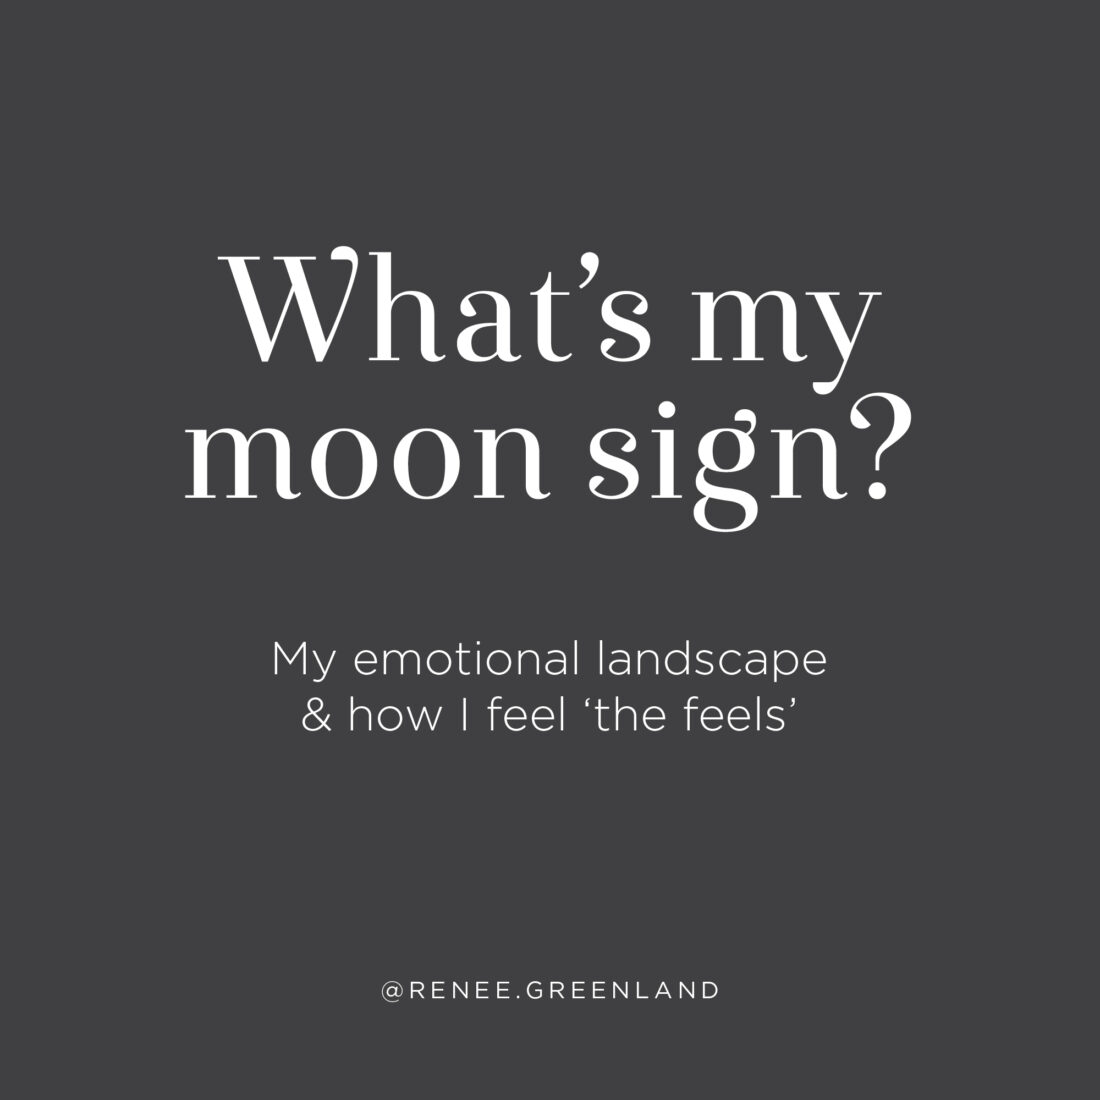 what's my moon sign